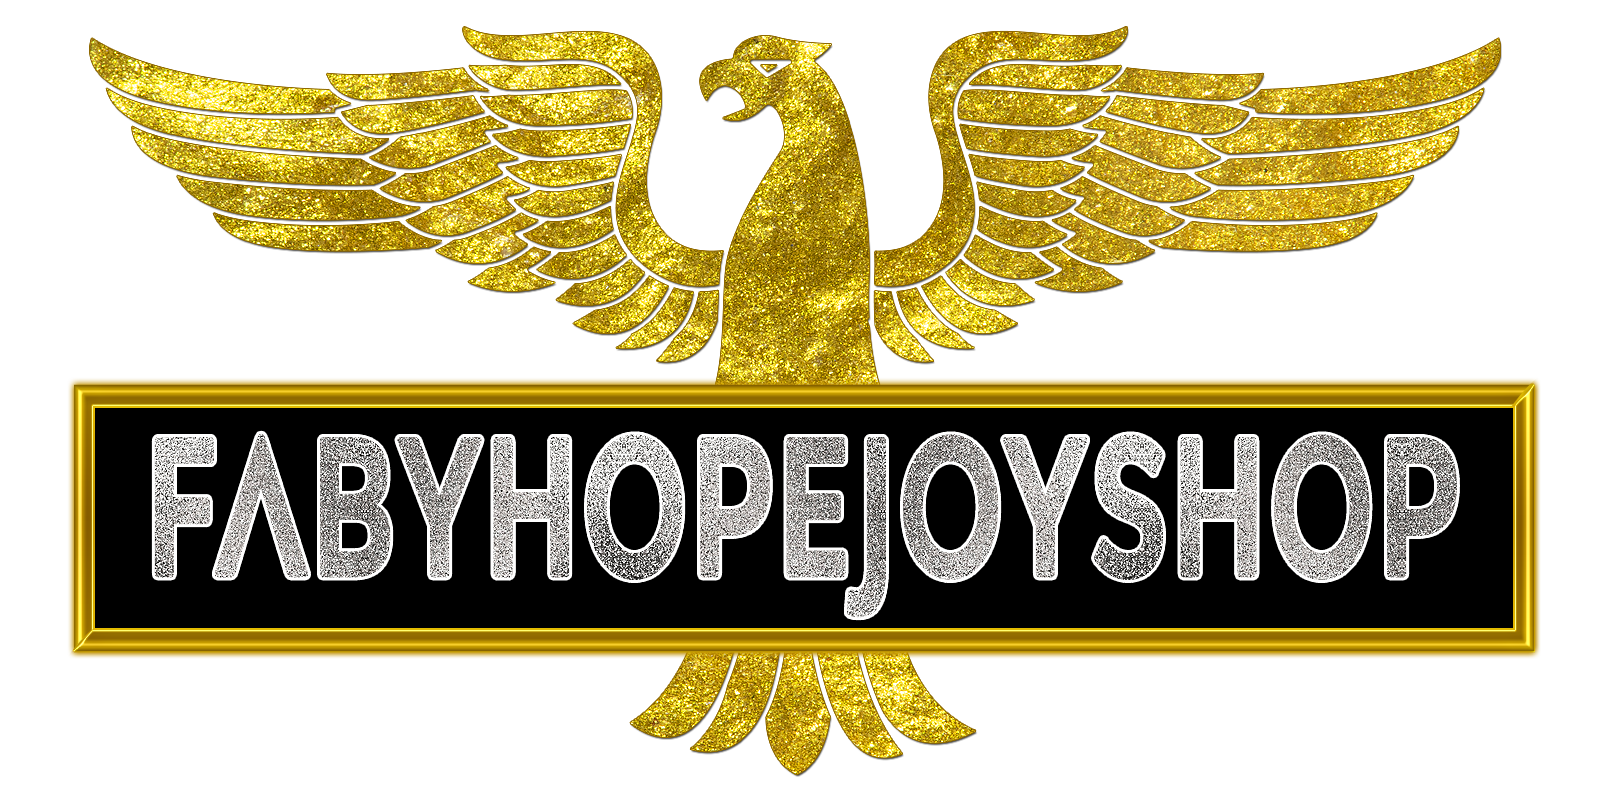 Fabyhopejoyshop-online store for shopping